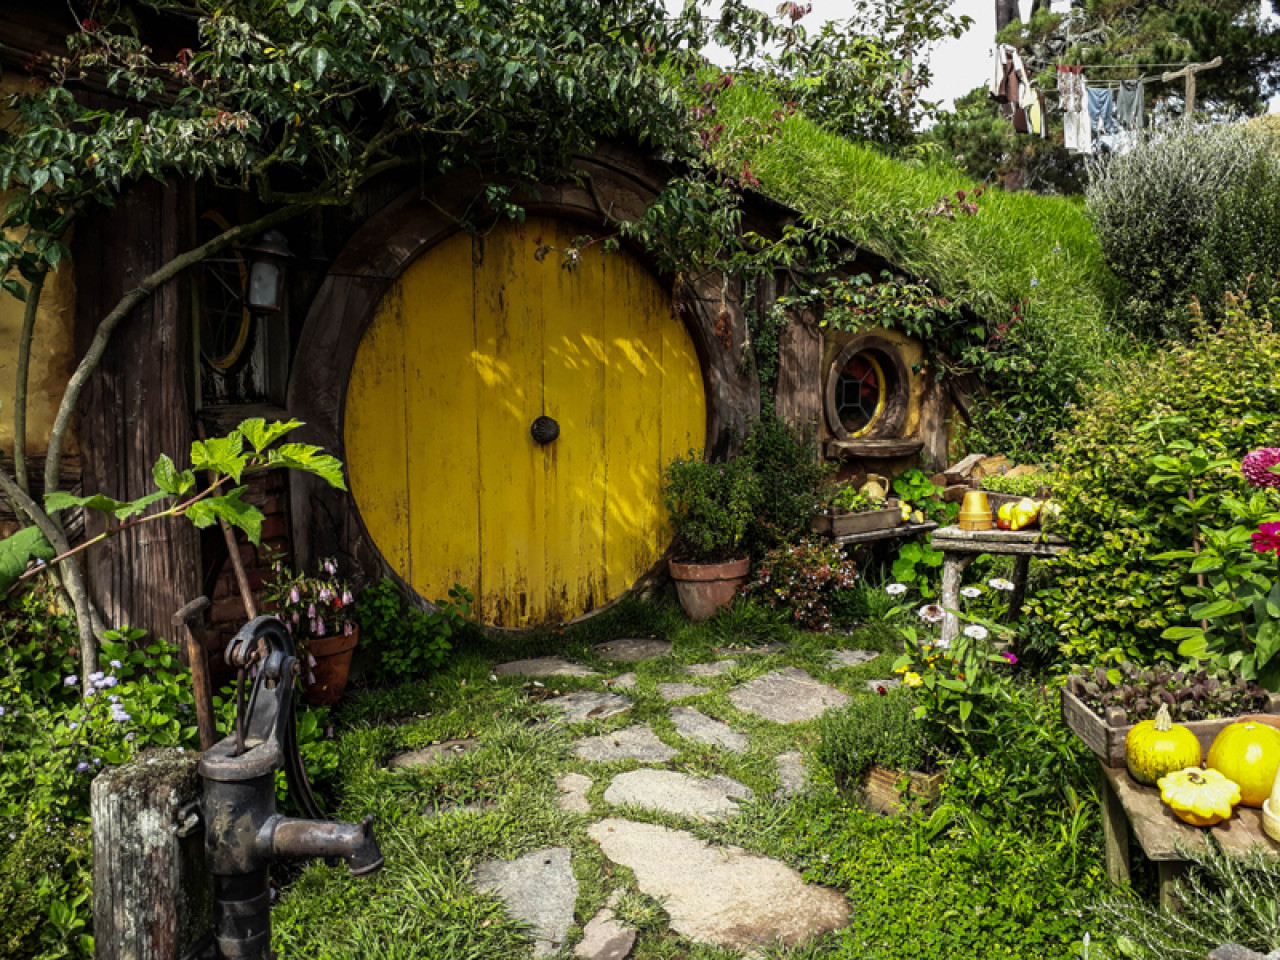 Samweis Gamgee's home with its yellow door is the very last thing we see at the end of The Lord of the Rings trilogy.